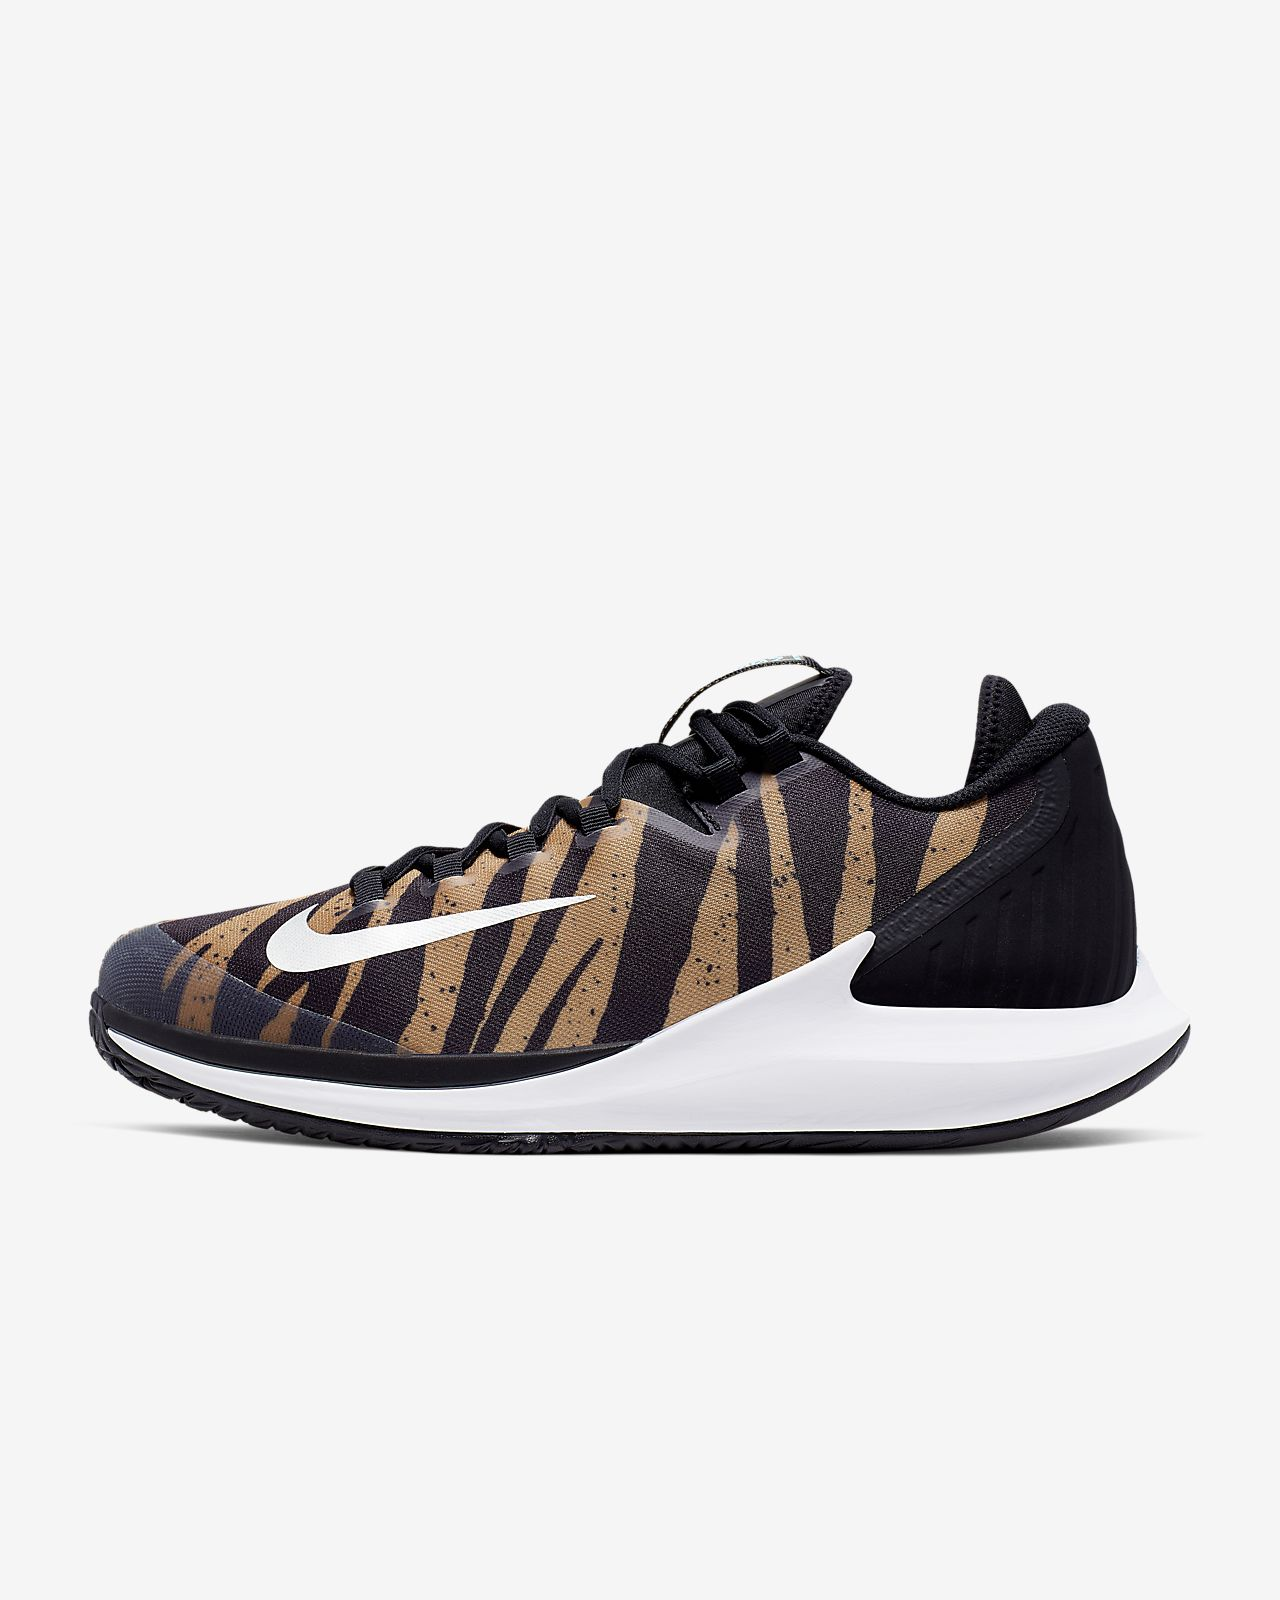 NikeCourt Air Zoom Zero Herren-Tennisschuh